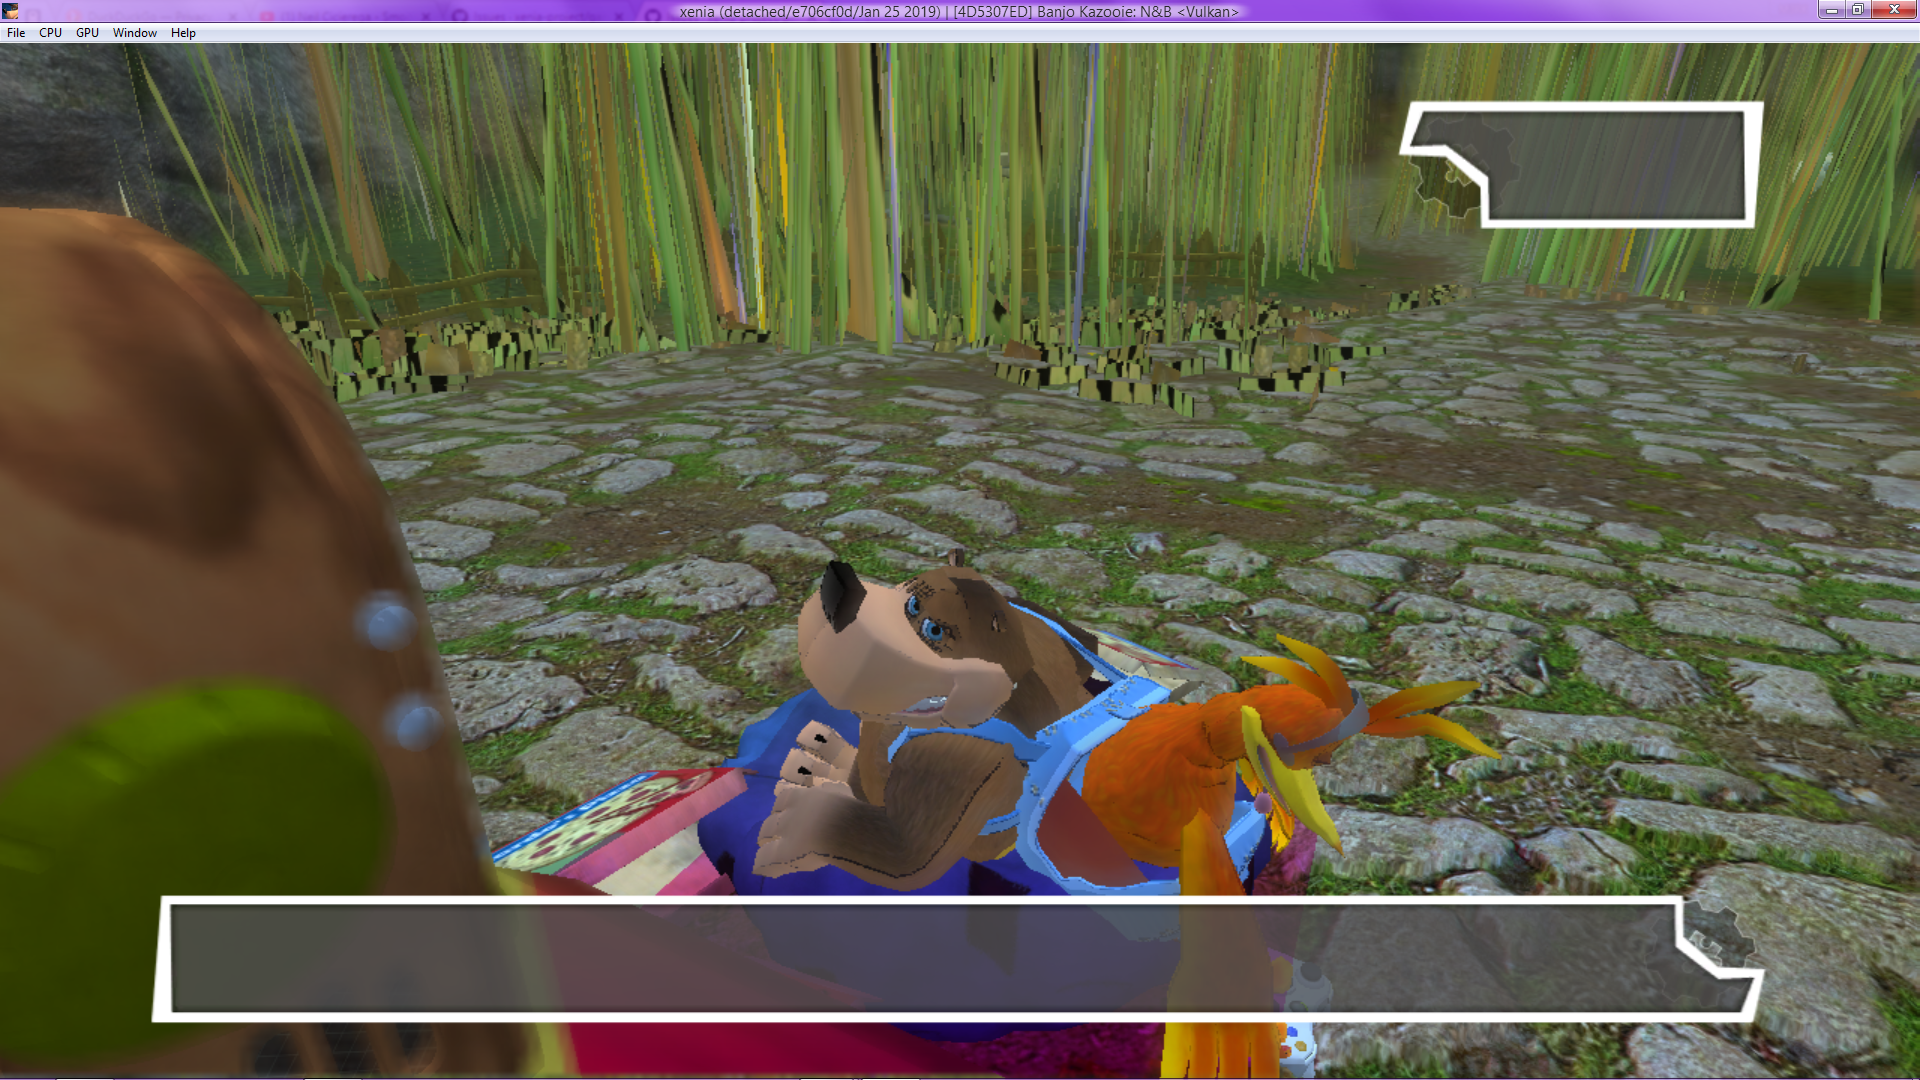 4D5307ED - Banjo Kazooie: Nuts & Bolts · Issue #49 · xenia